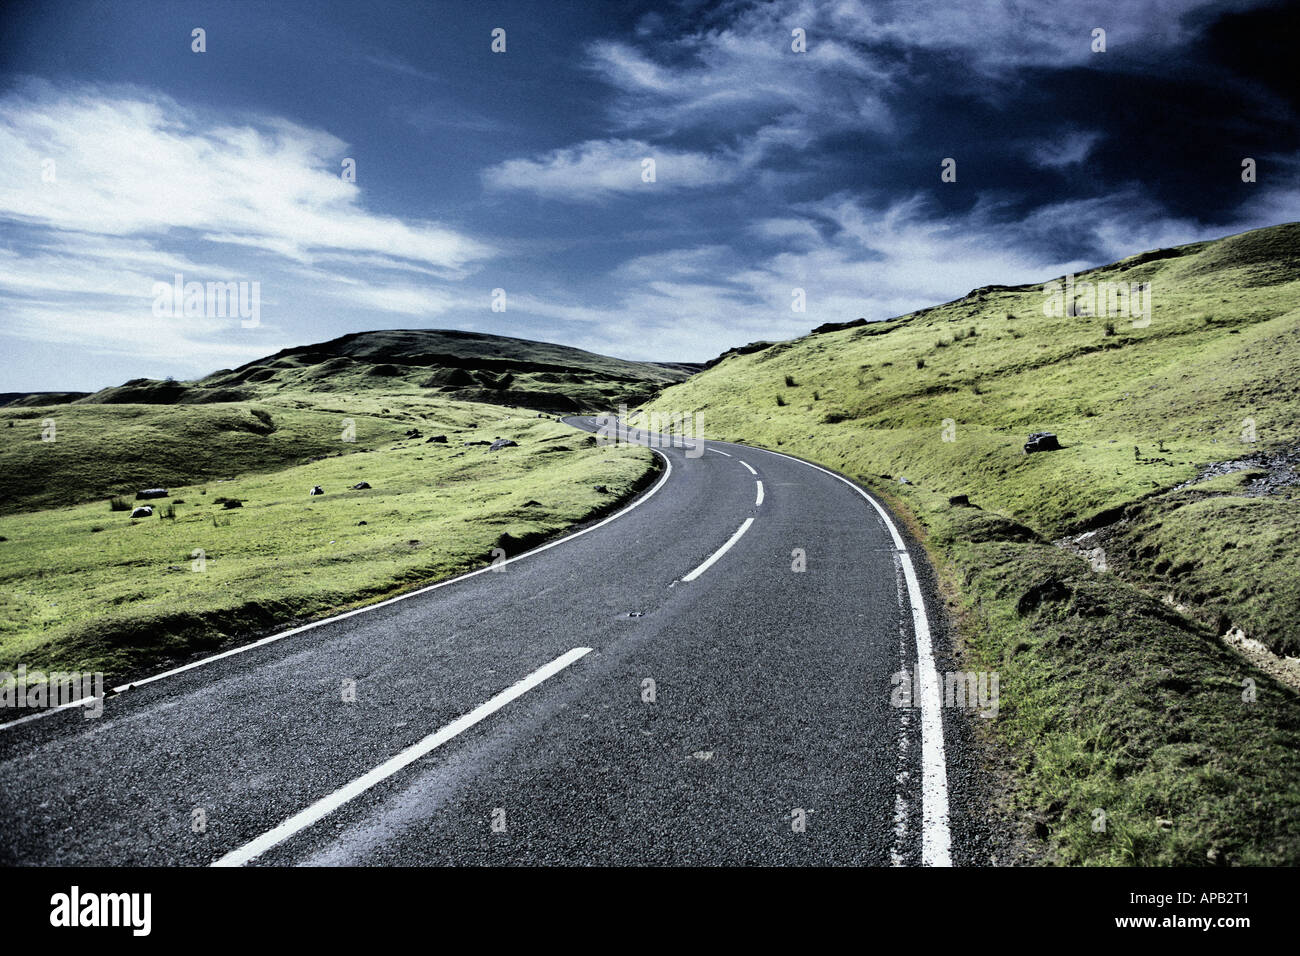 A countryside road - Stock Image